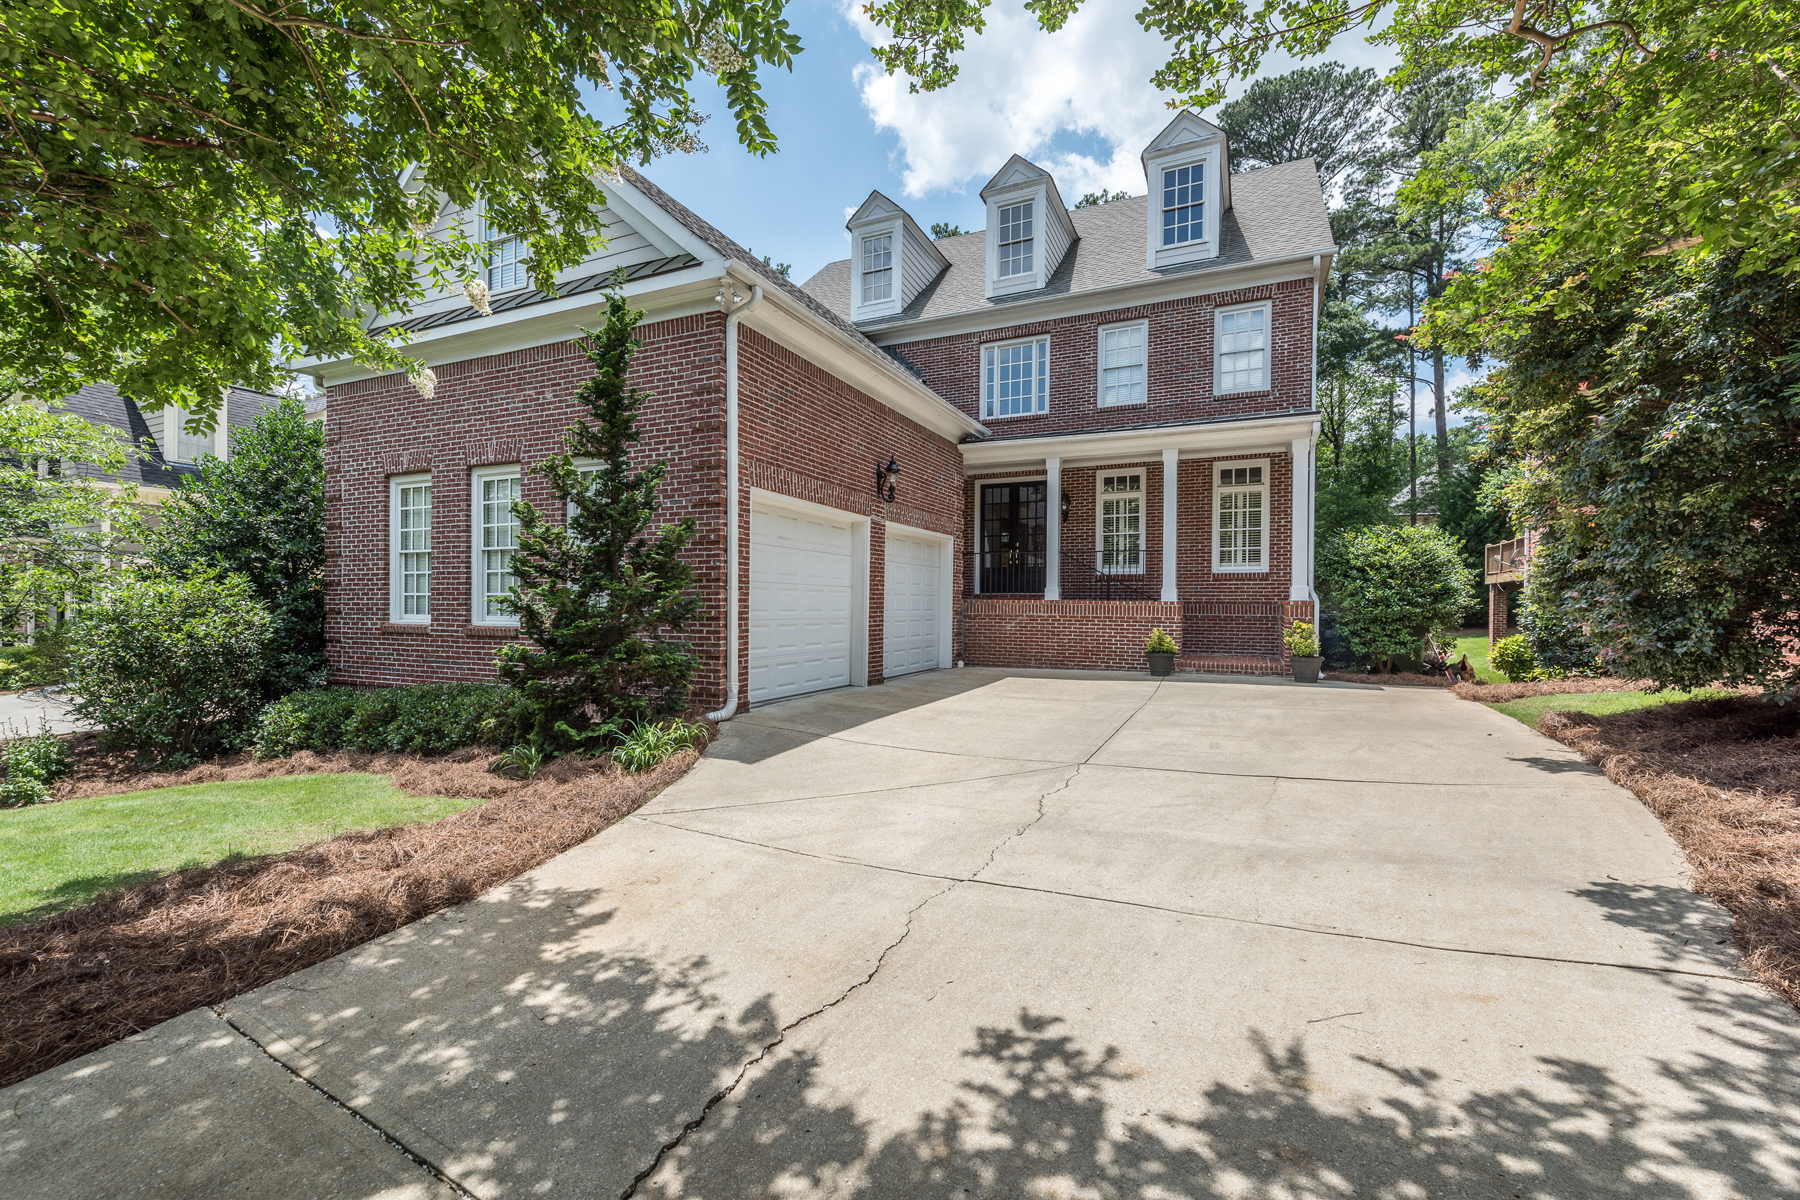 Single Family Home for Sale at Rare Opportunity On Coveted Greendale Drive Cul-de-sac 3036 Greendale Drive NW Atlanta, Georgia 30327 United States